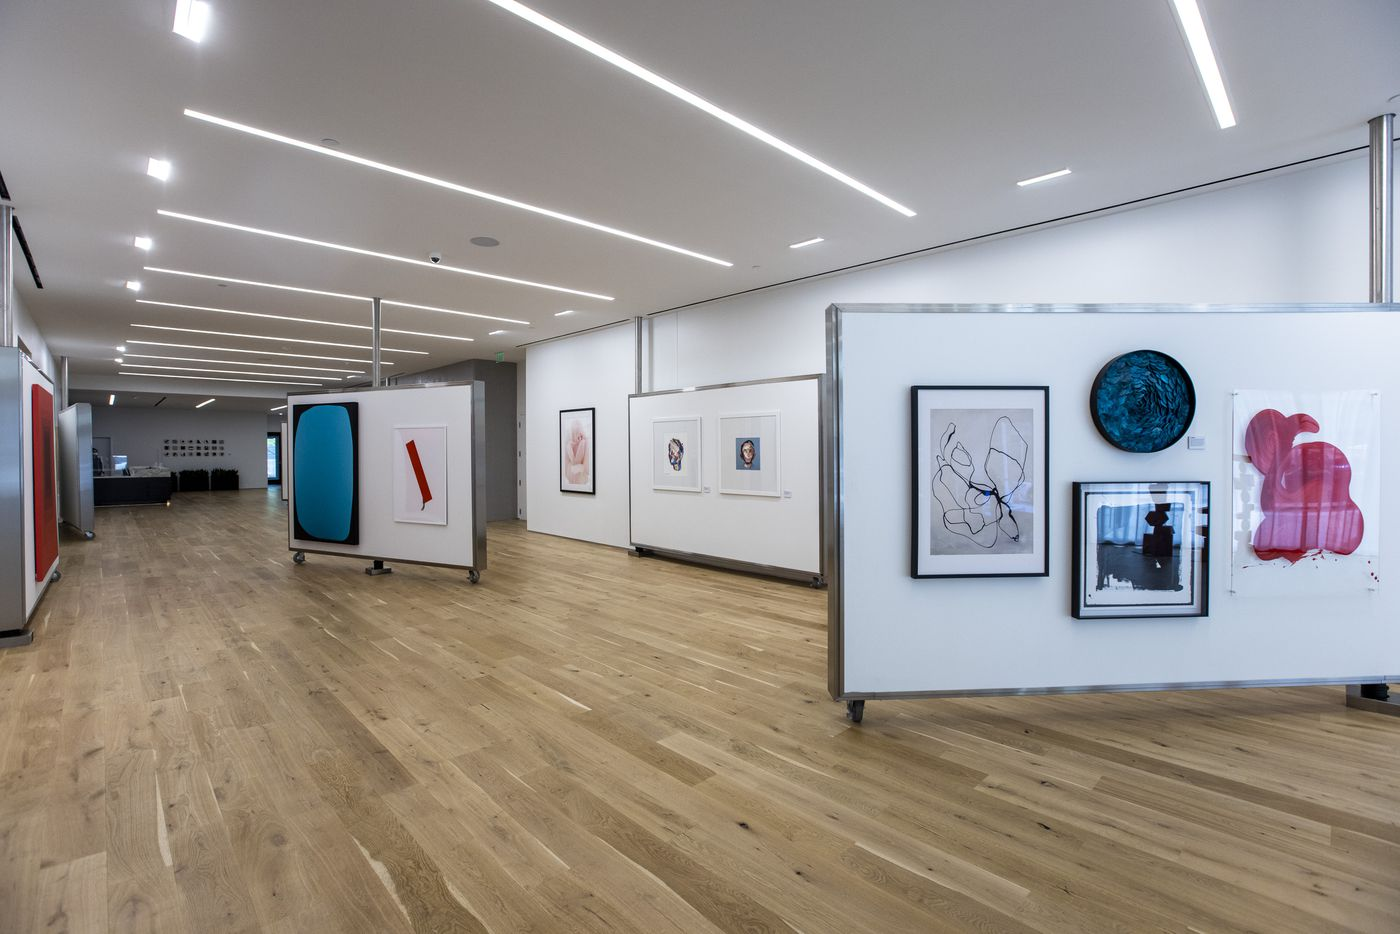 The main lobby of the Atelier, a 41-story luxury residential building in the heart of the Dallas Arts District, features a gallery of art work. (Lynda M. González/The Dallas Morning News)